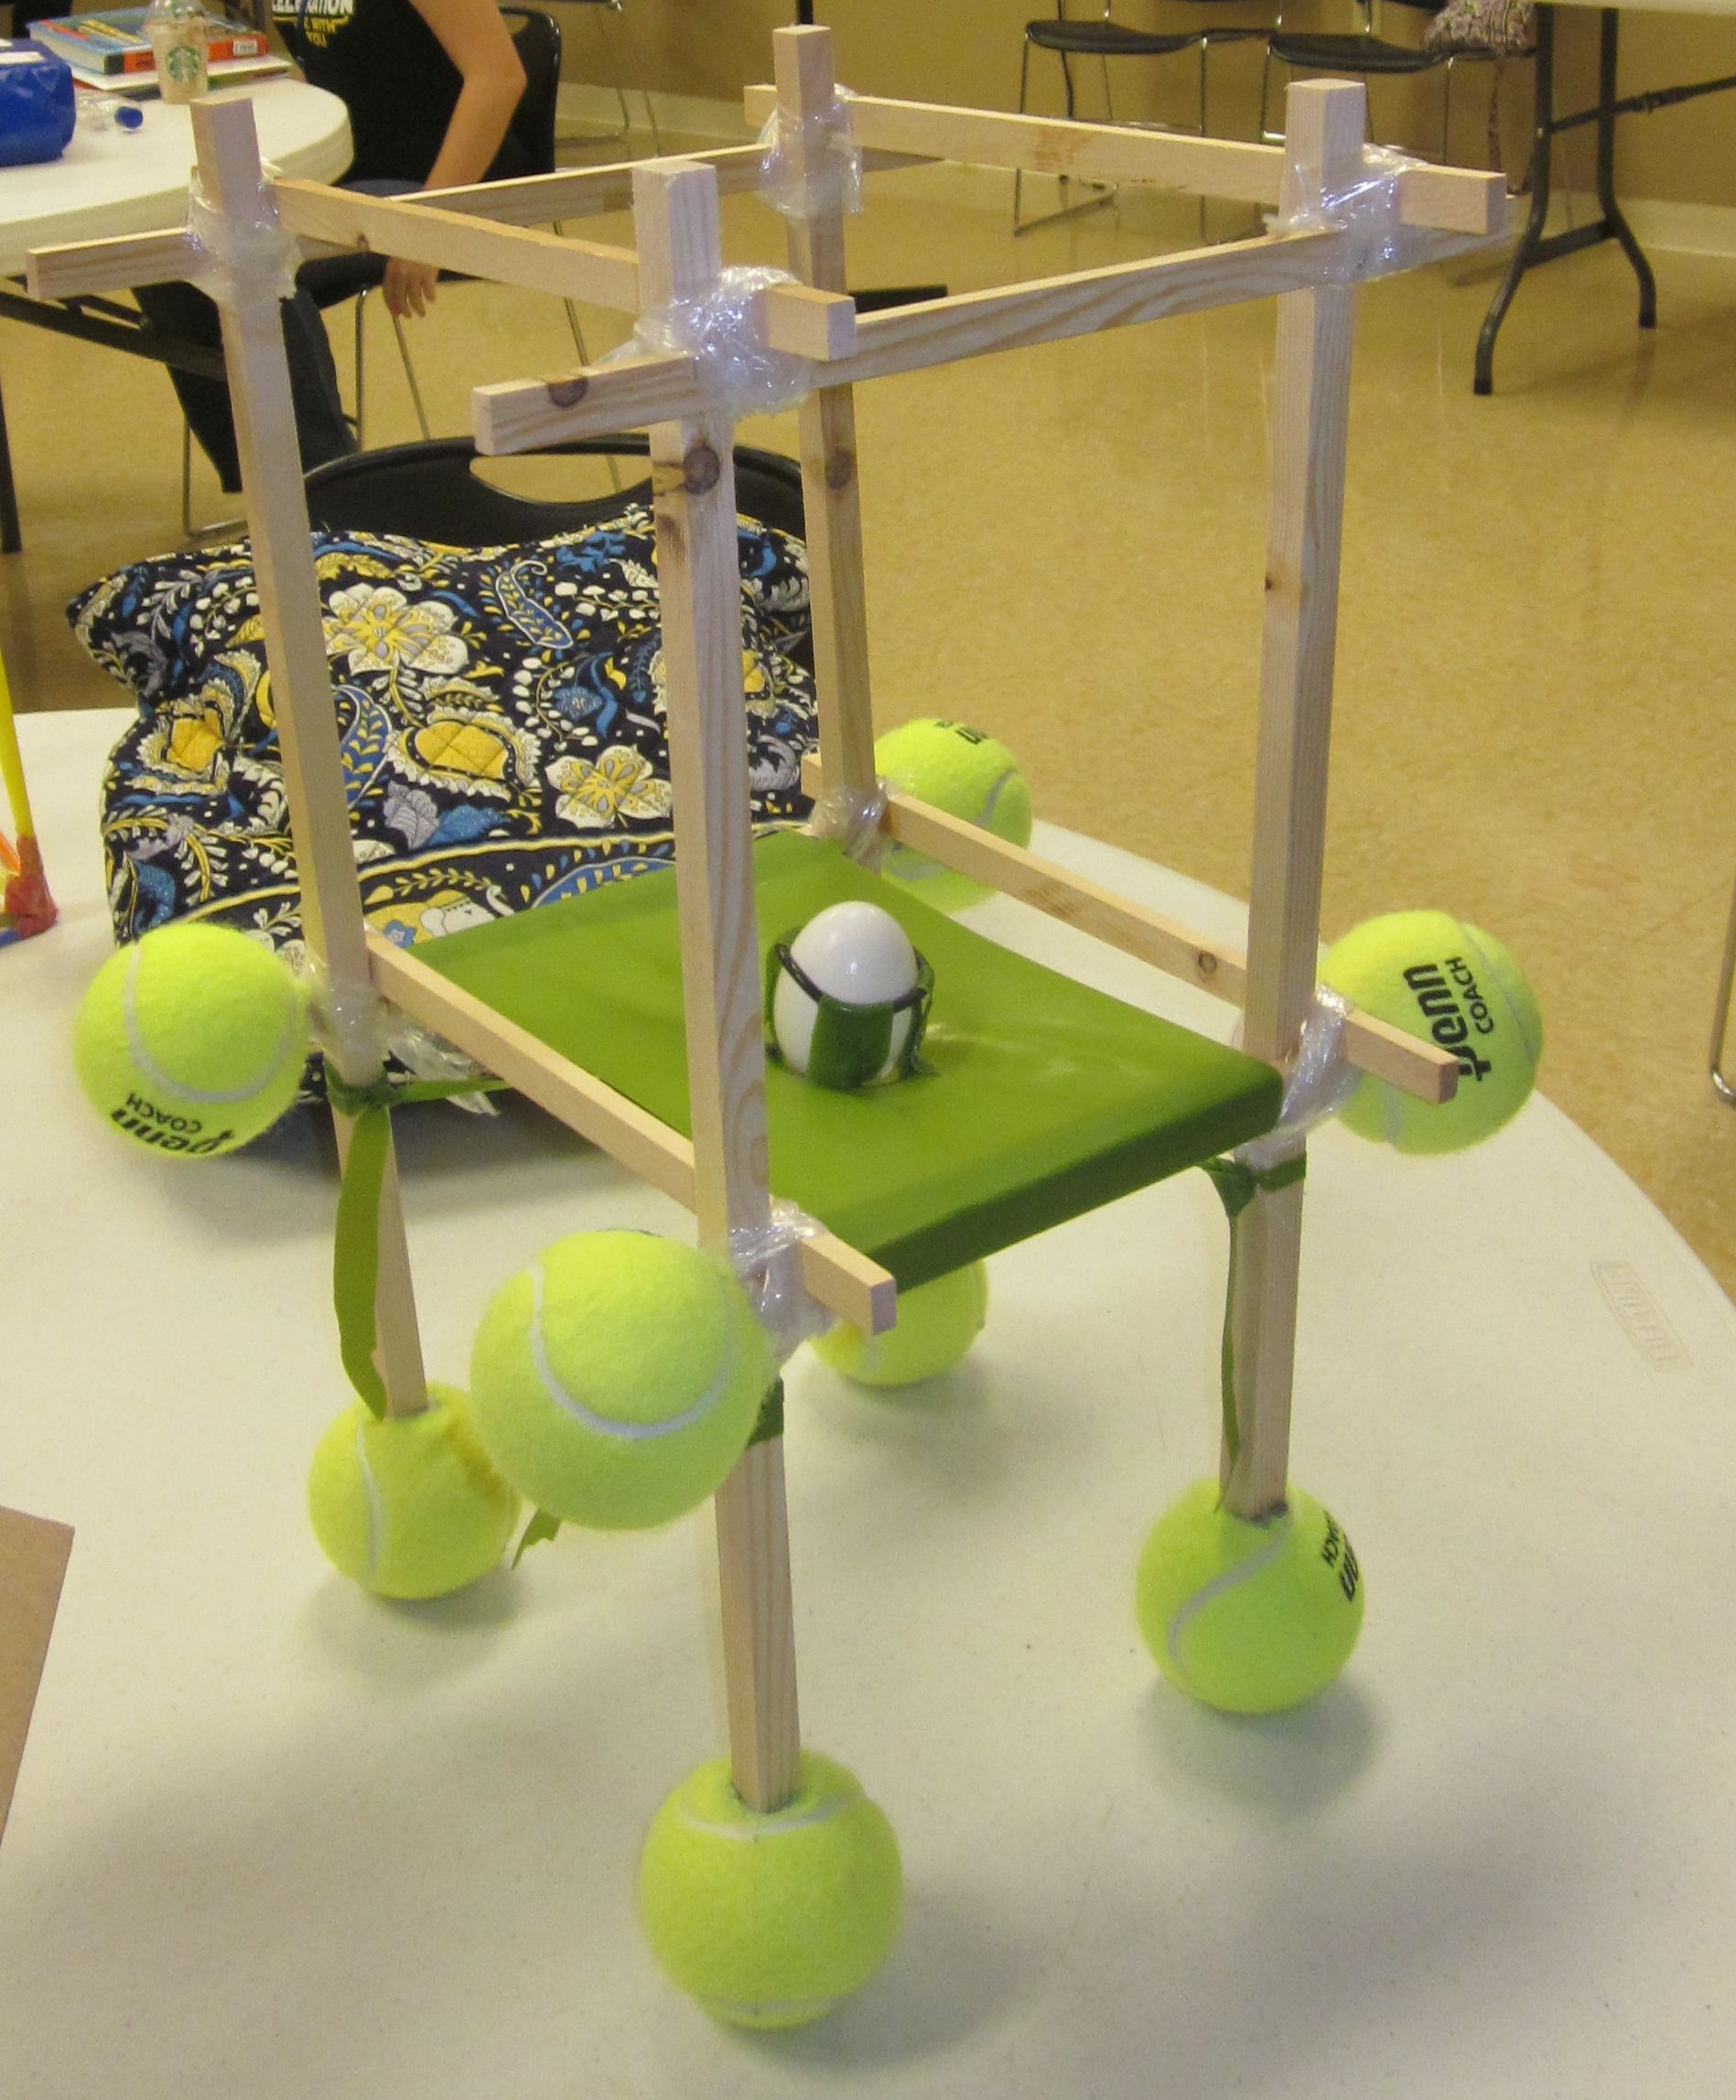 Bailey 39 s egg drop project for online high school physics course homeschooling high school for Physics planning and design experiments